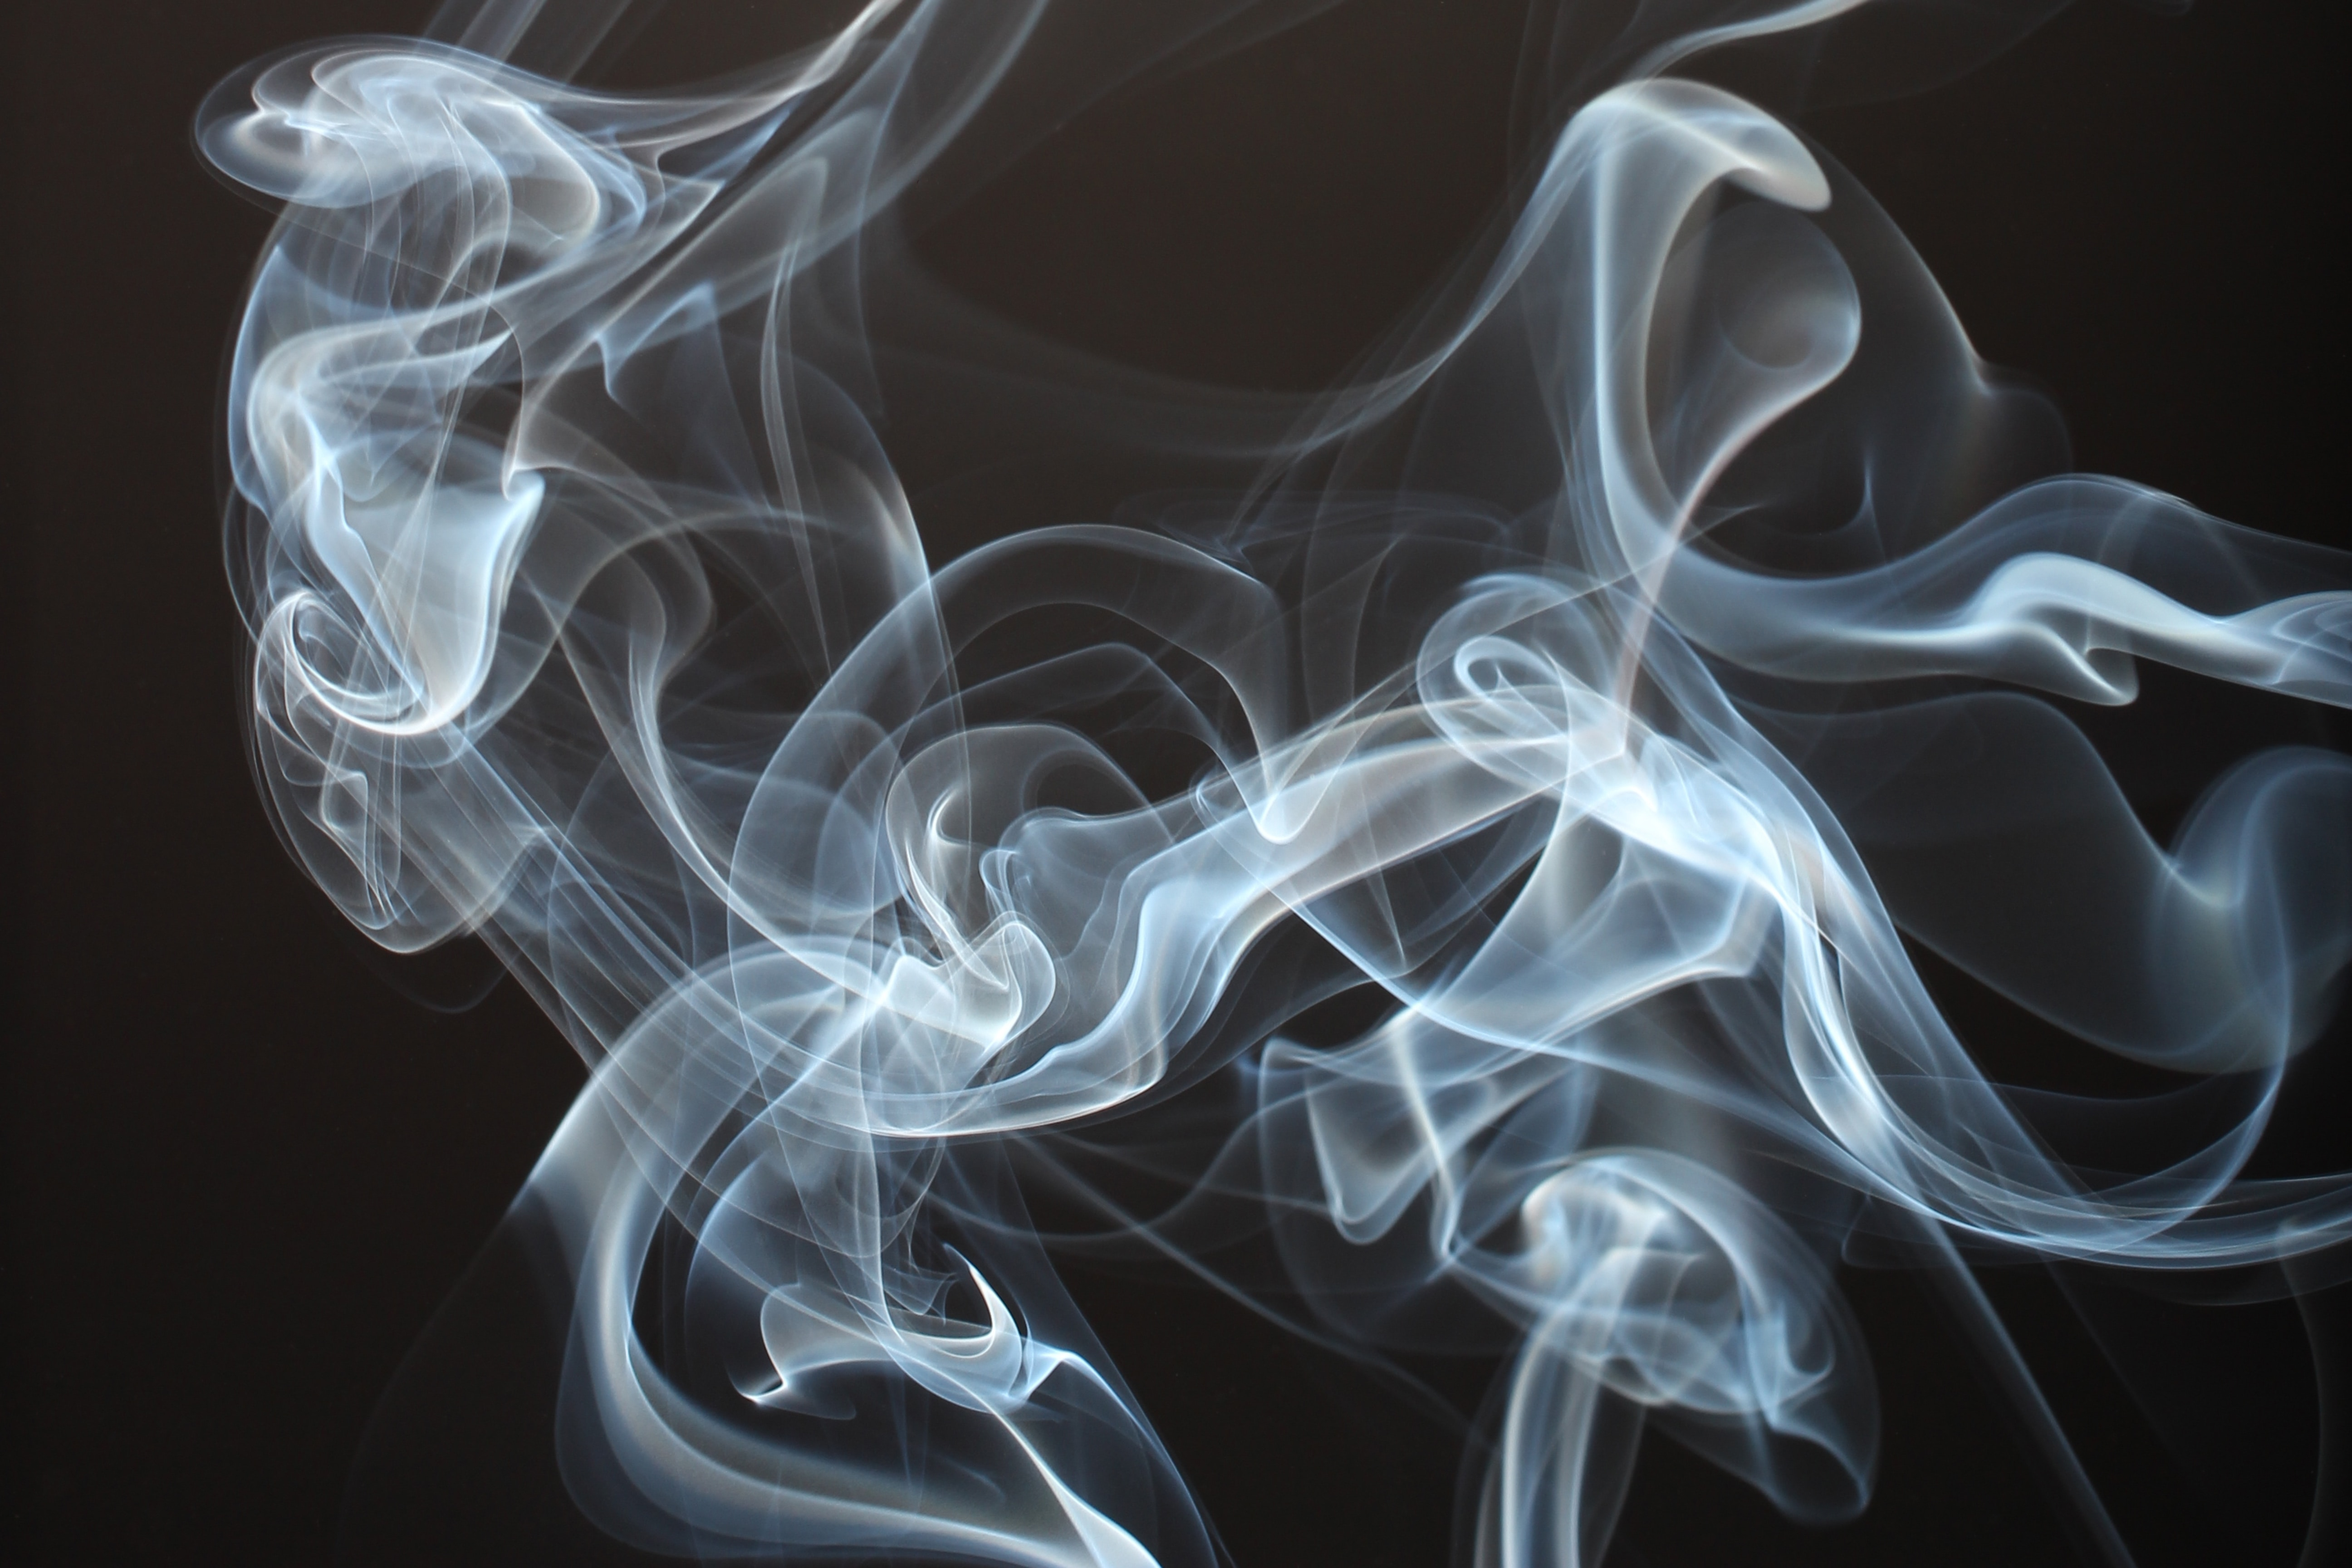 About All Things Vapefeatured image